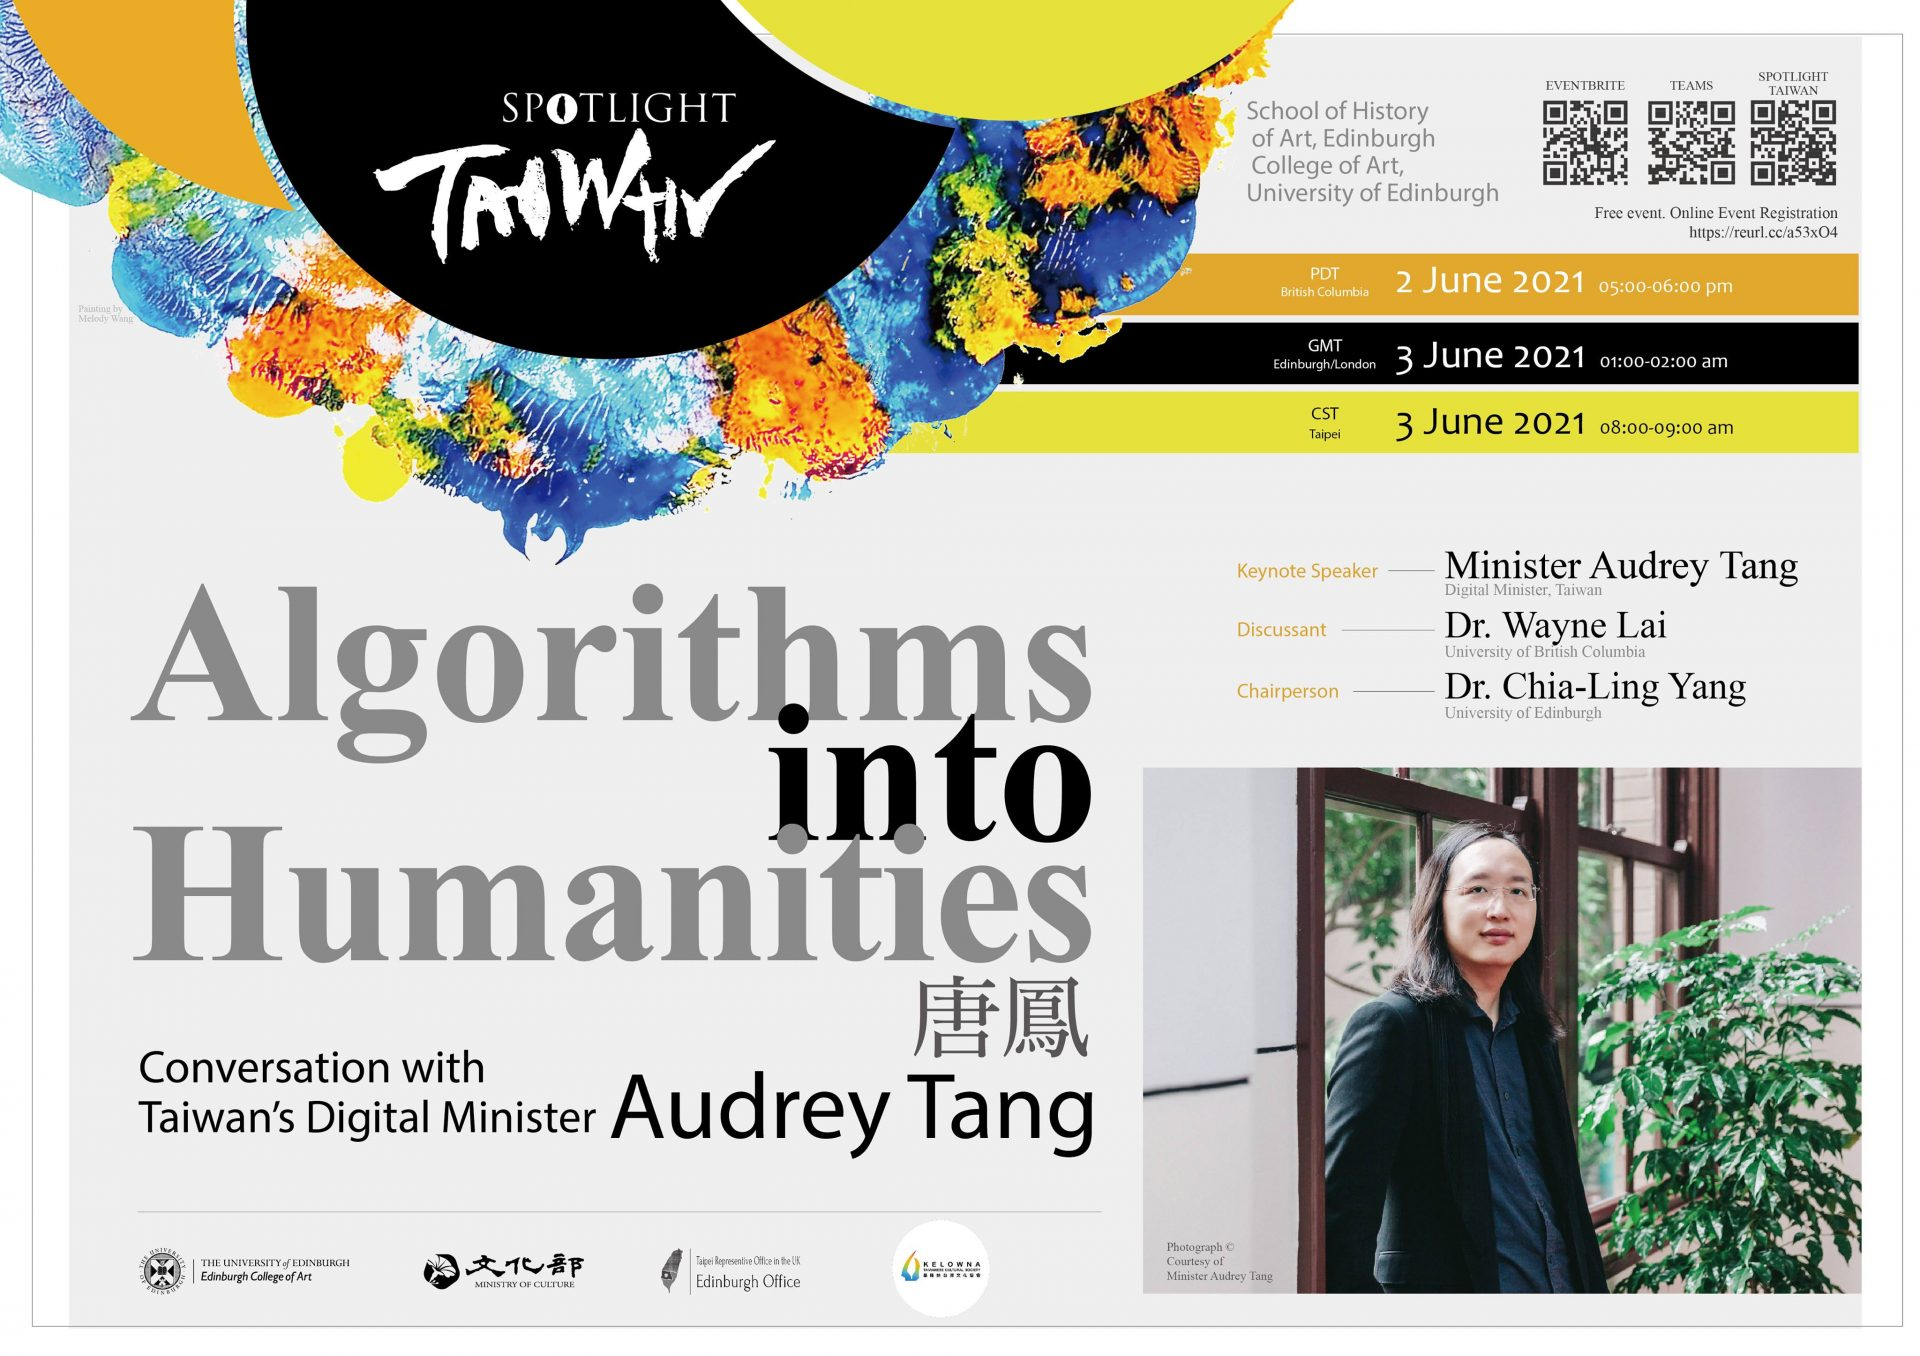 2021 Spotlight Taiwan Lecture: Conversation with Digital Minister Audrey Tang